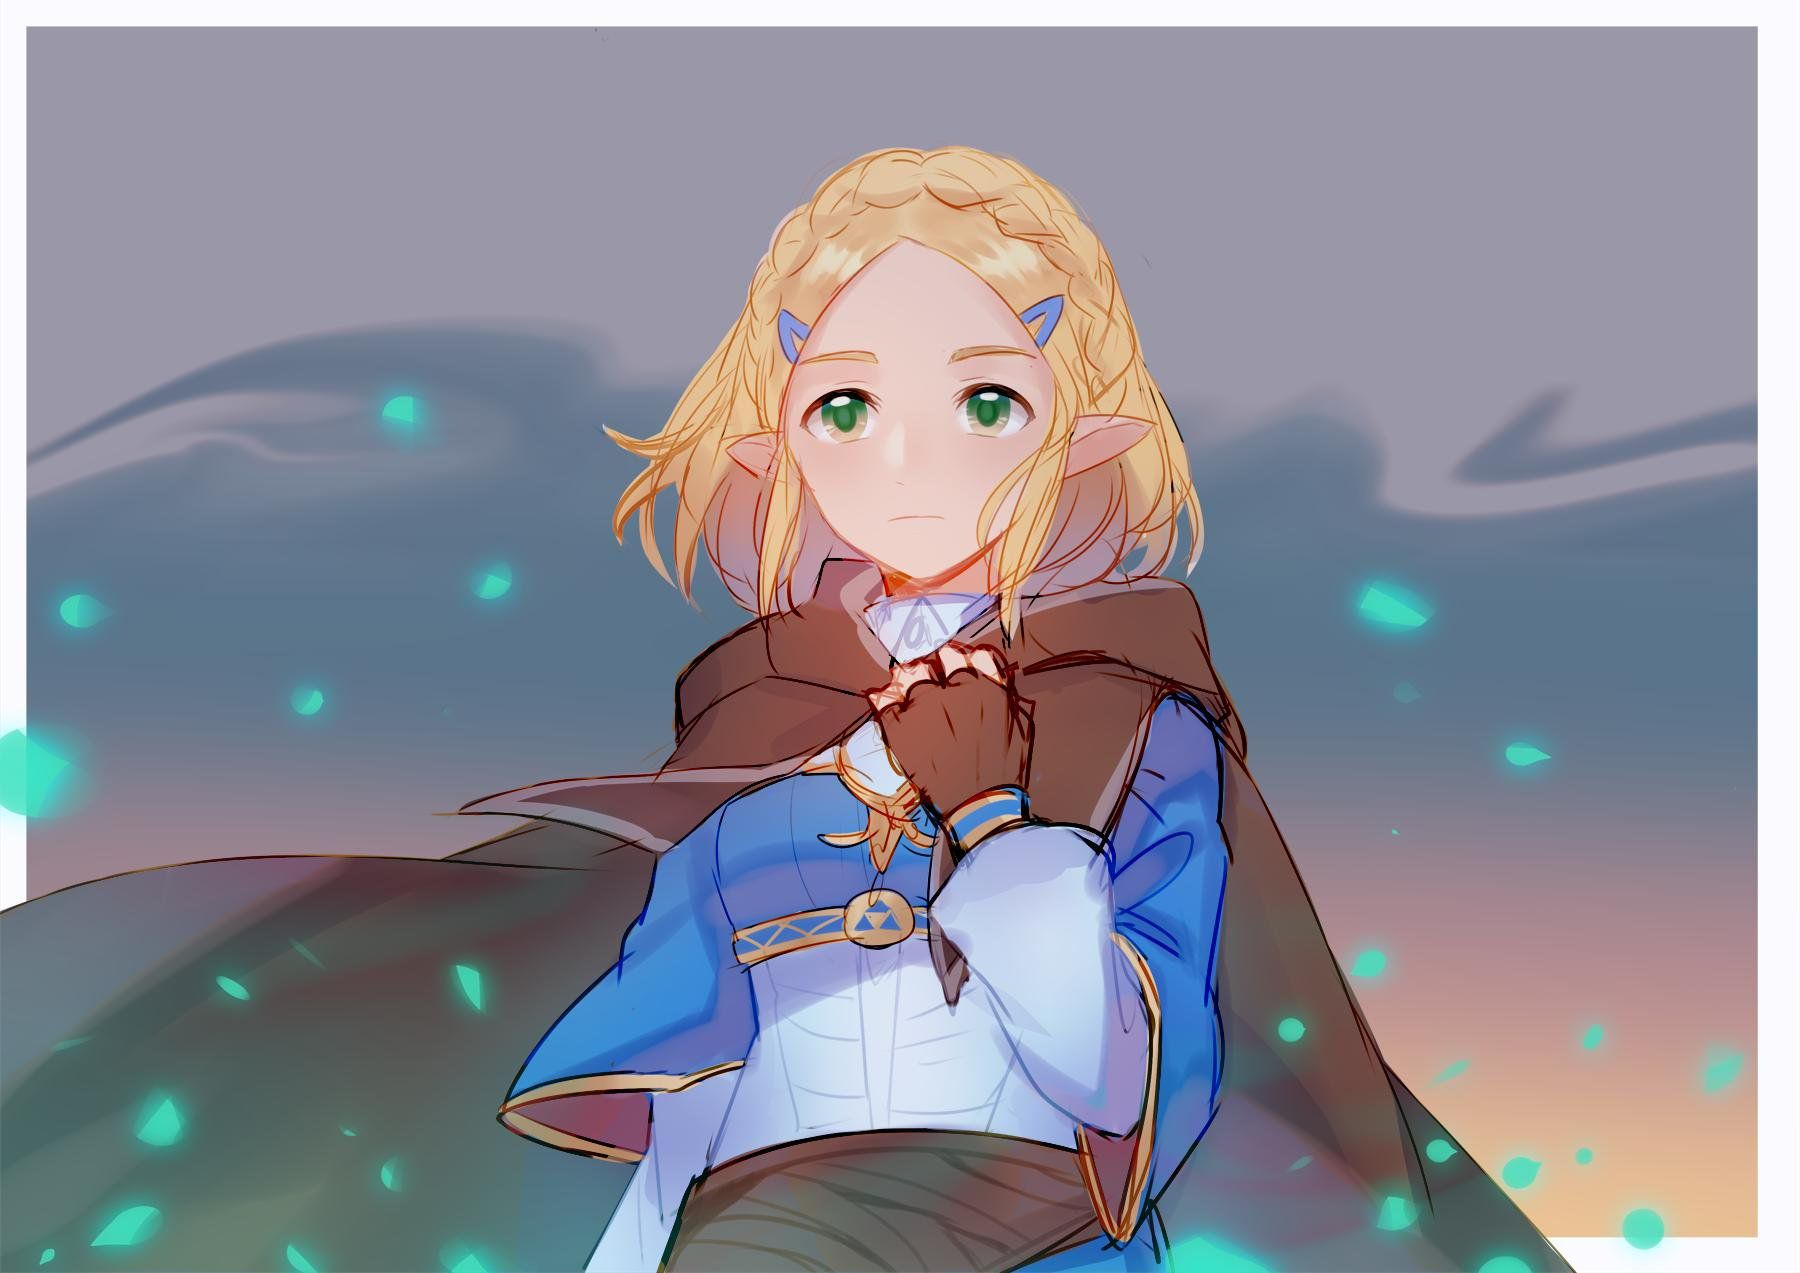 Short Haired Princess Botw2 Princess Shorthaired Zelda Legend Of Zelda Legend Of Zelda Breath Botw Zelda